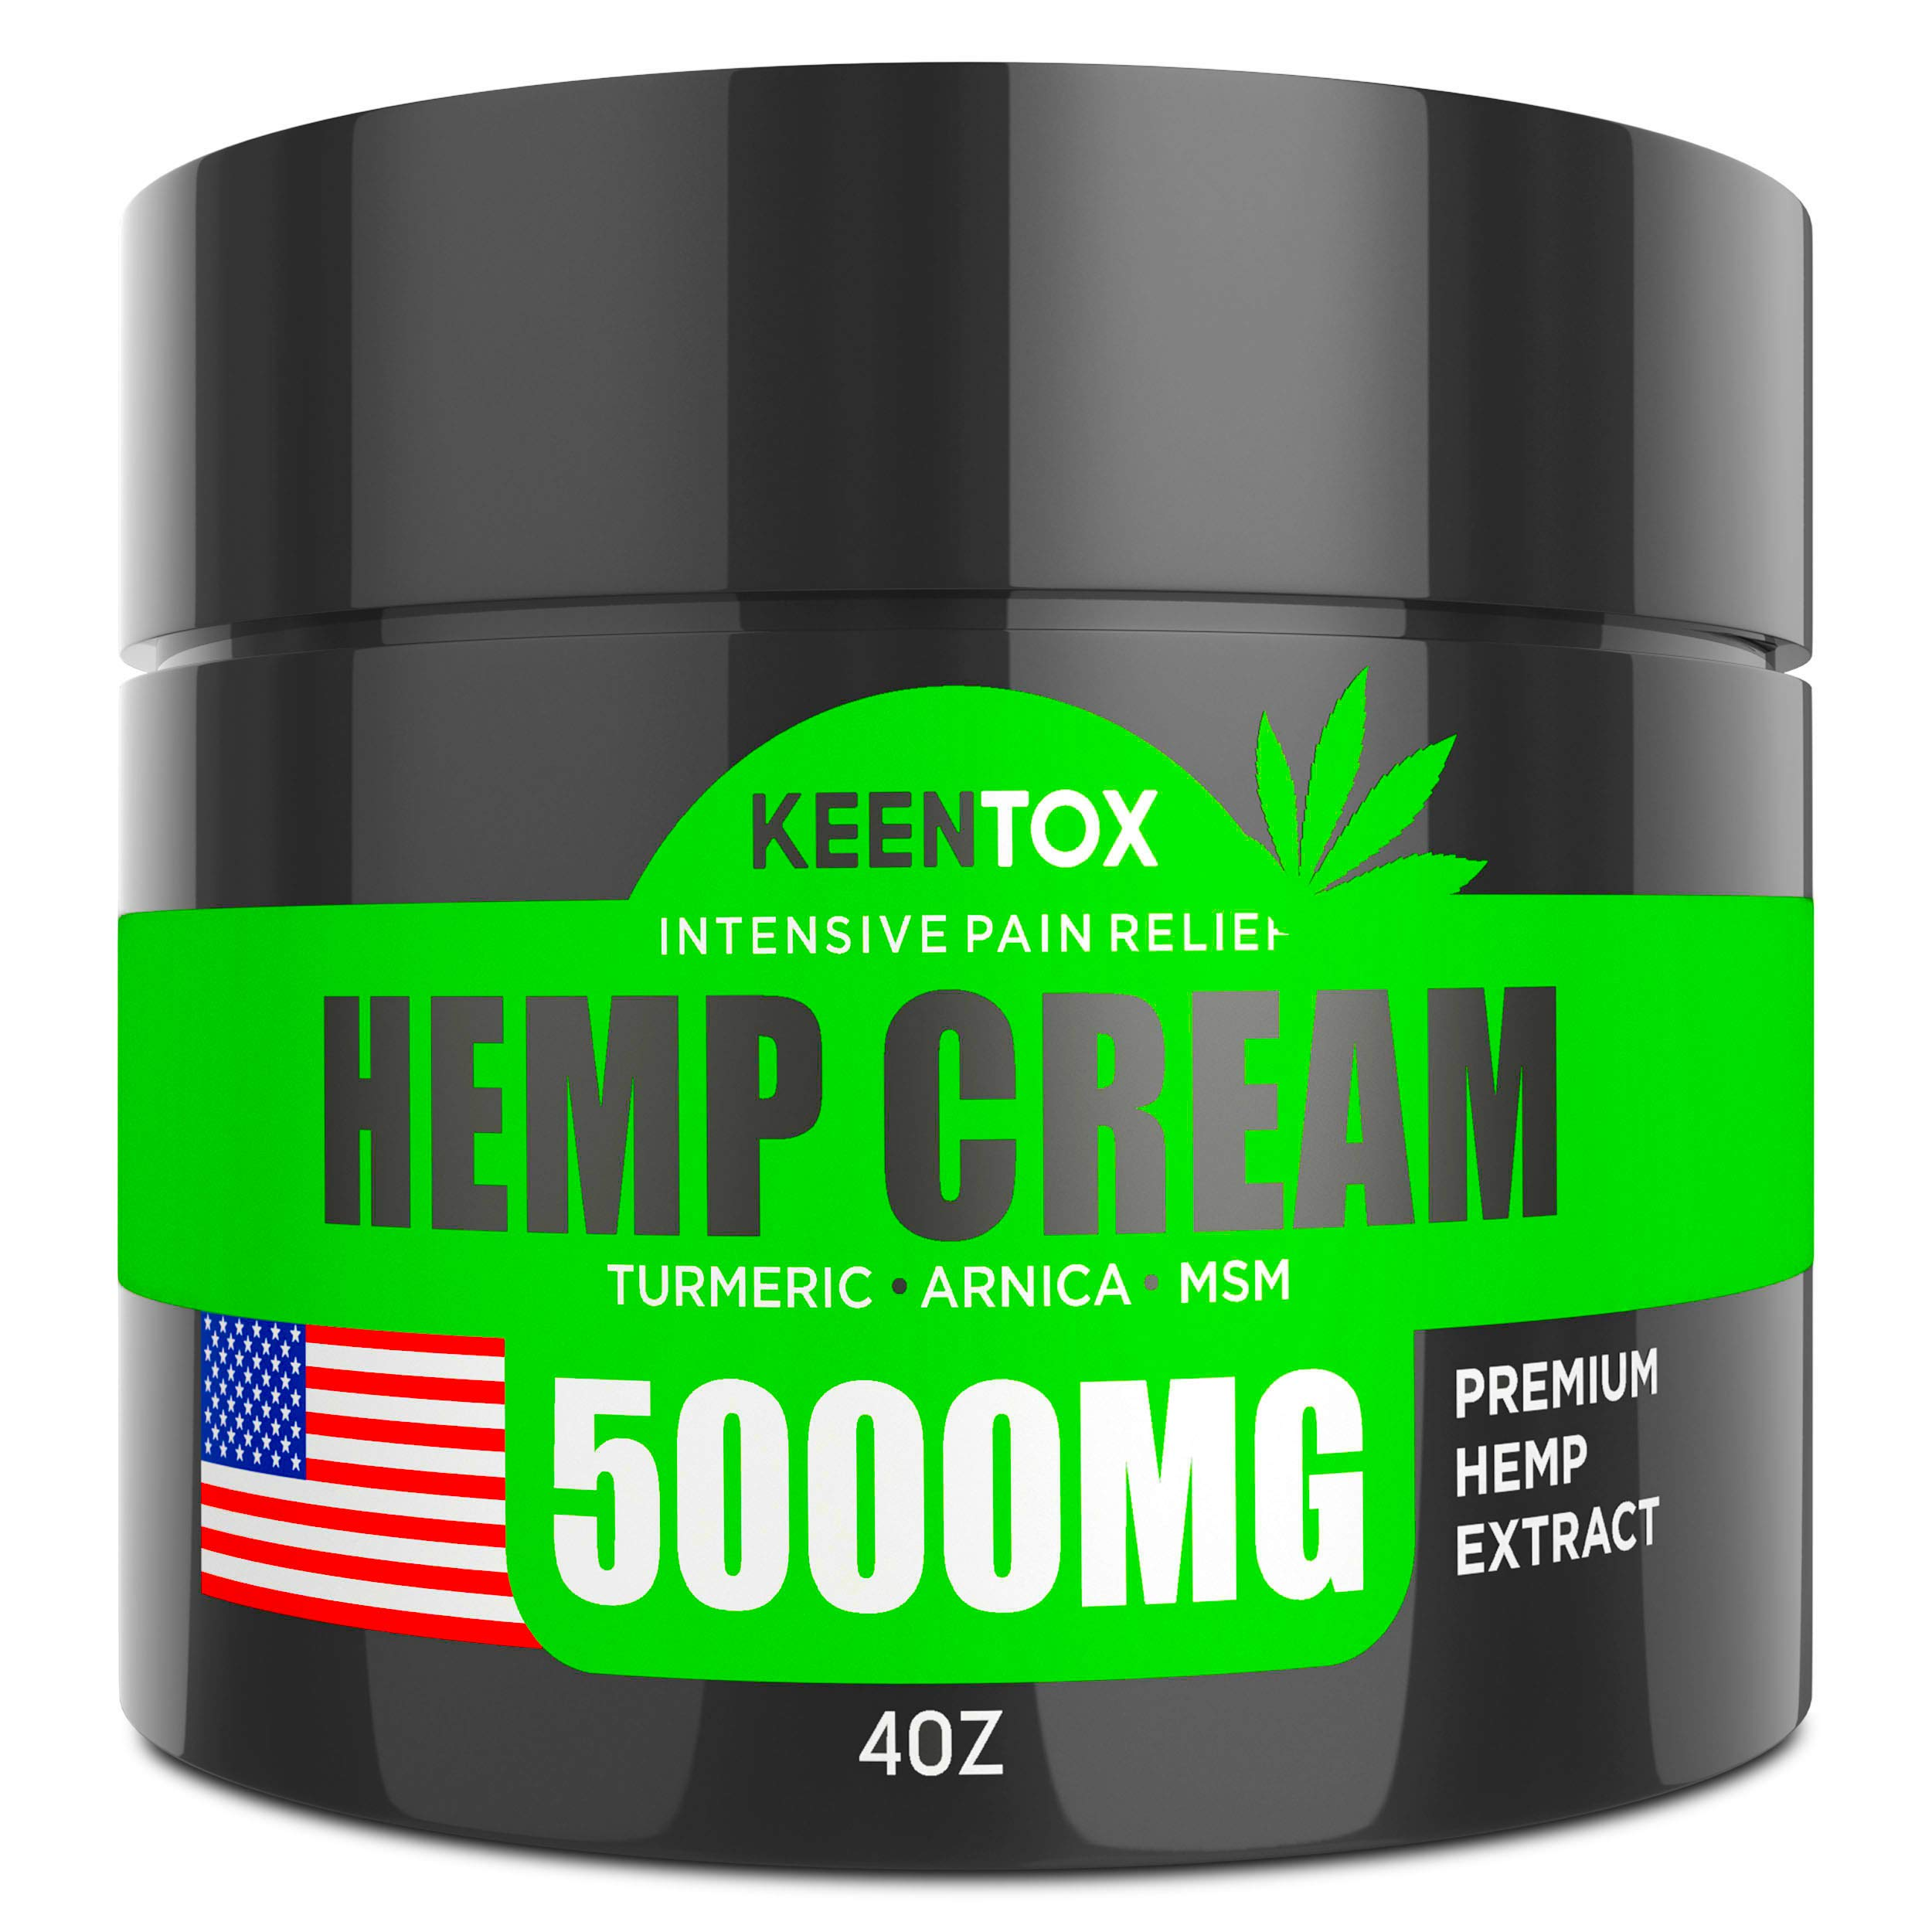 Hemp Pain Relief Cream - 5000 MG - Relieves Muscle, Joint Pain, Lower Back Pain, Knees, and Fingers - Inflammation - Hemp Extract Remedy - Hemp Oil with MSM - EMU Oil - Arnica - Turmeric Made in USA by Kinpur